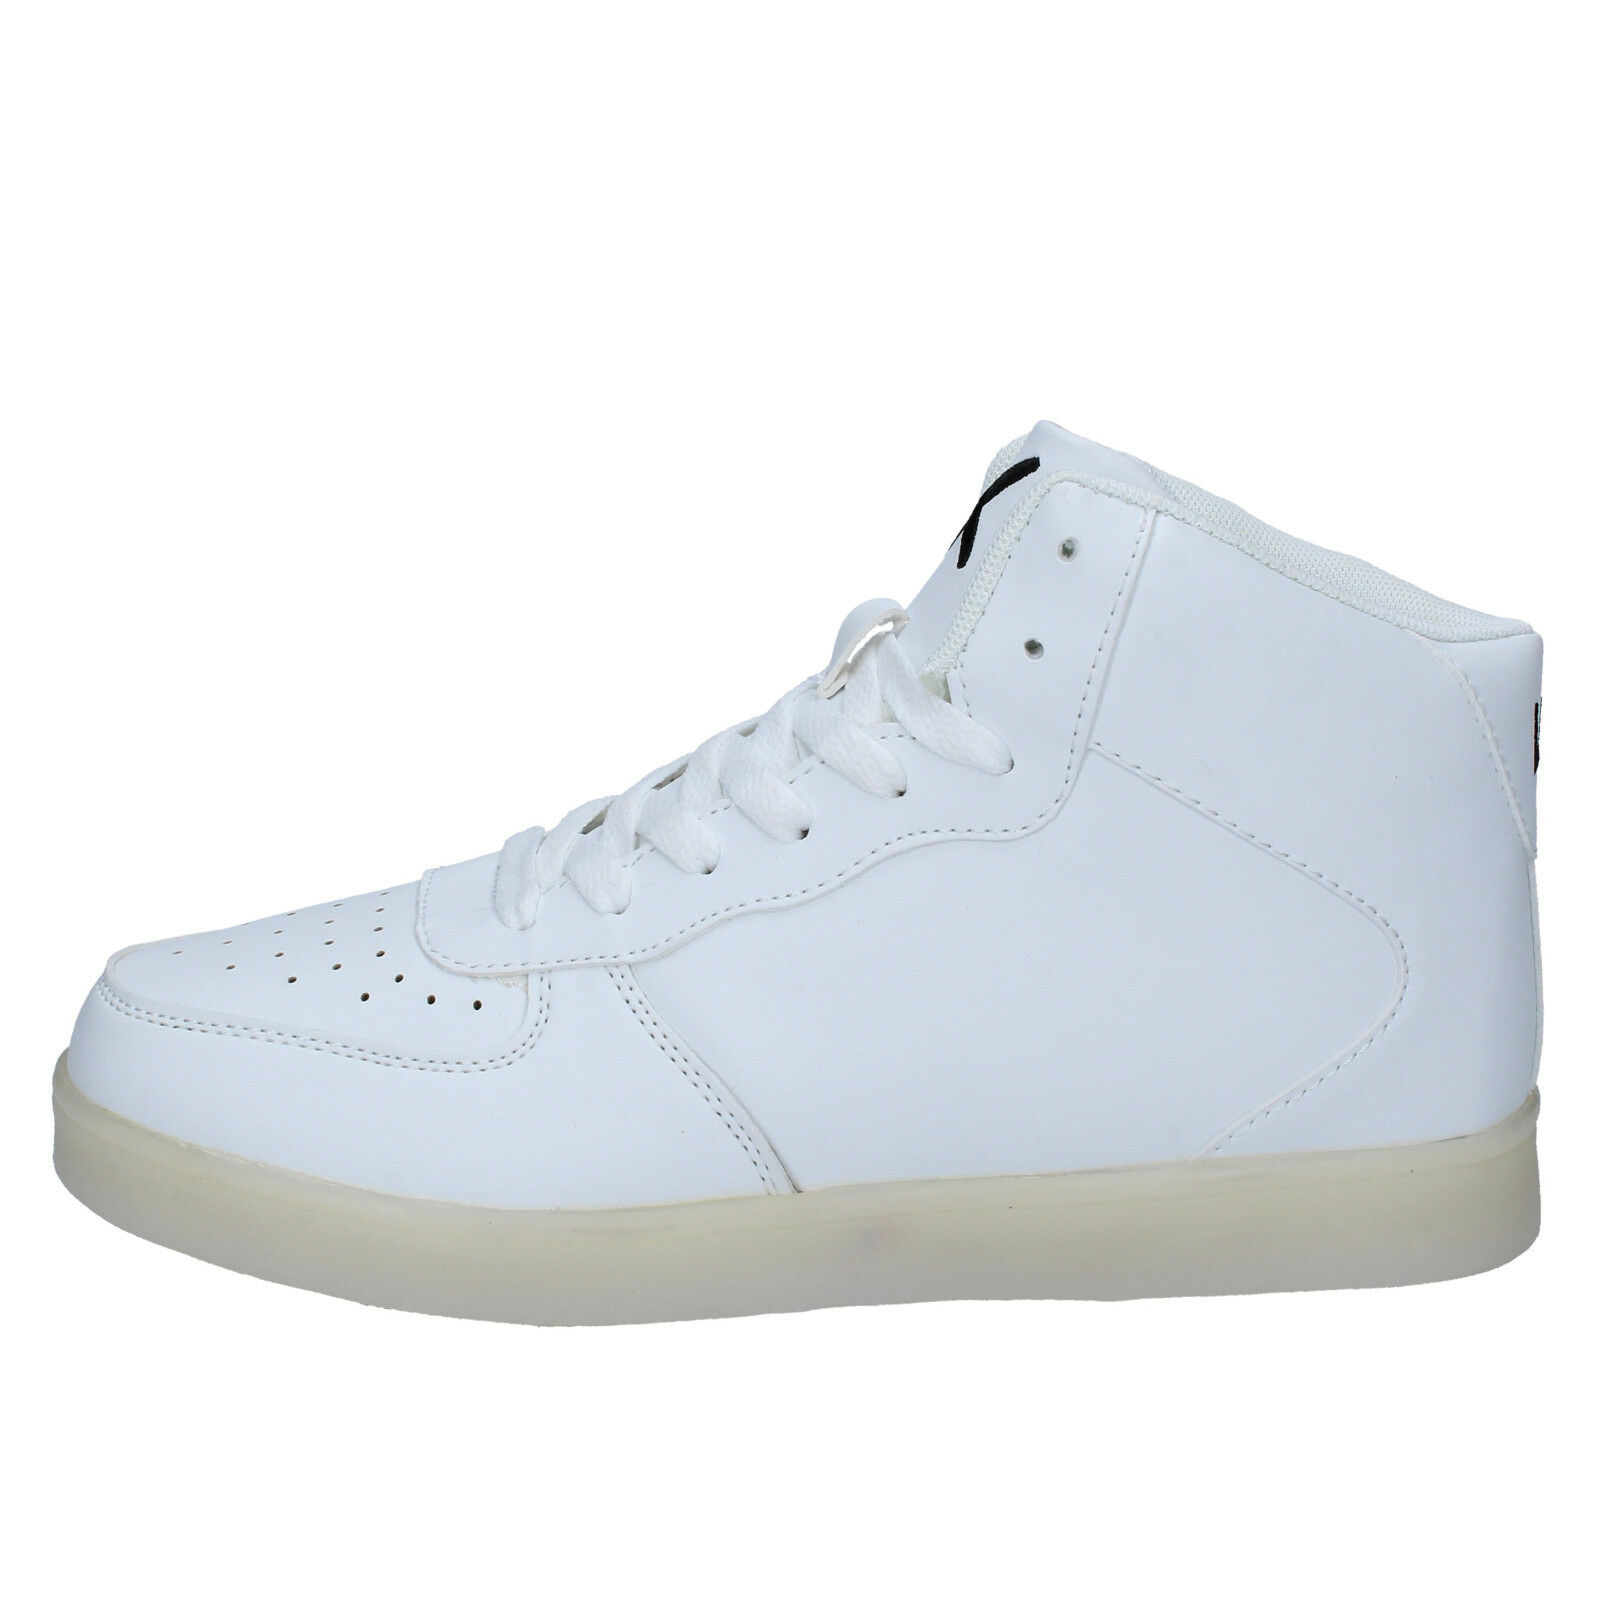 Men's shoes WIZE & OPE 9 () sneakers white leather BY890-42